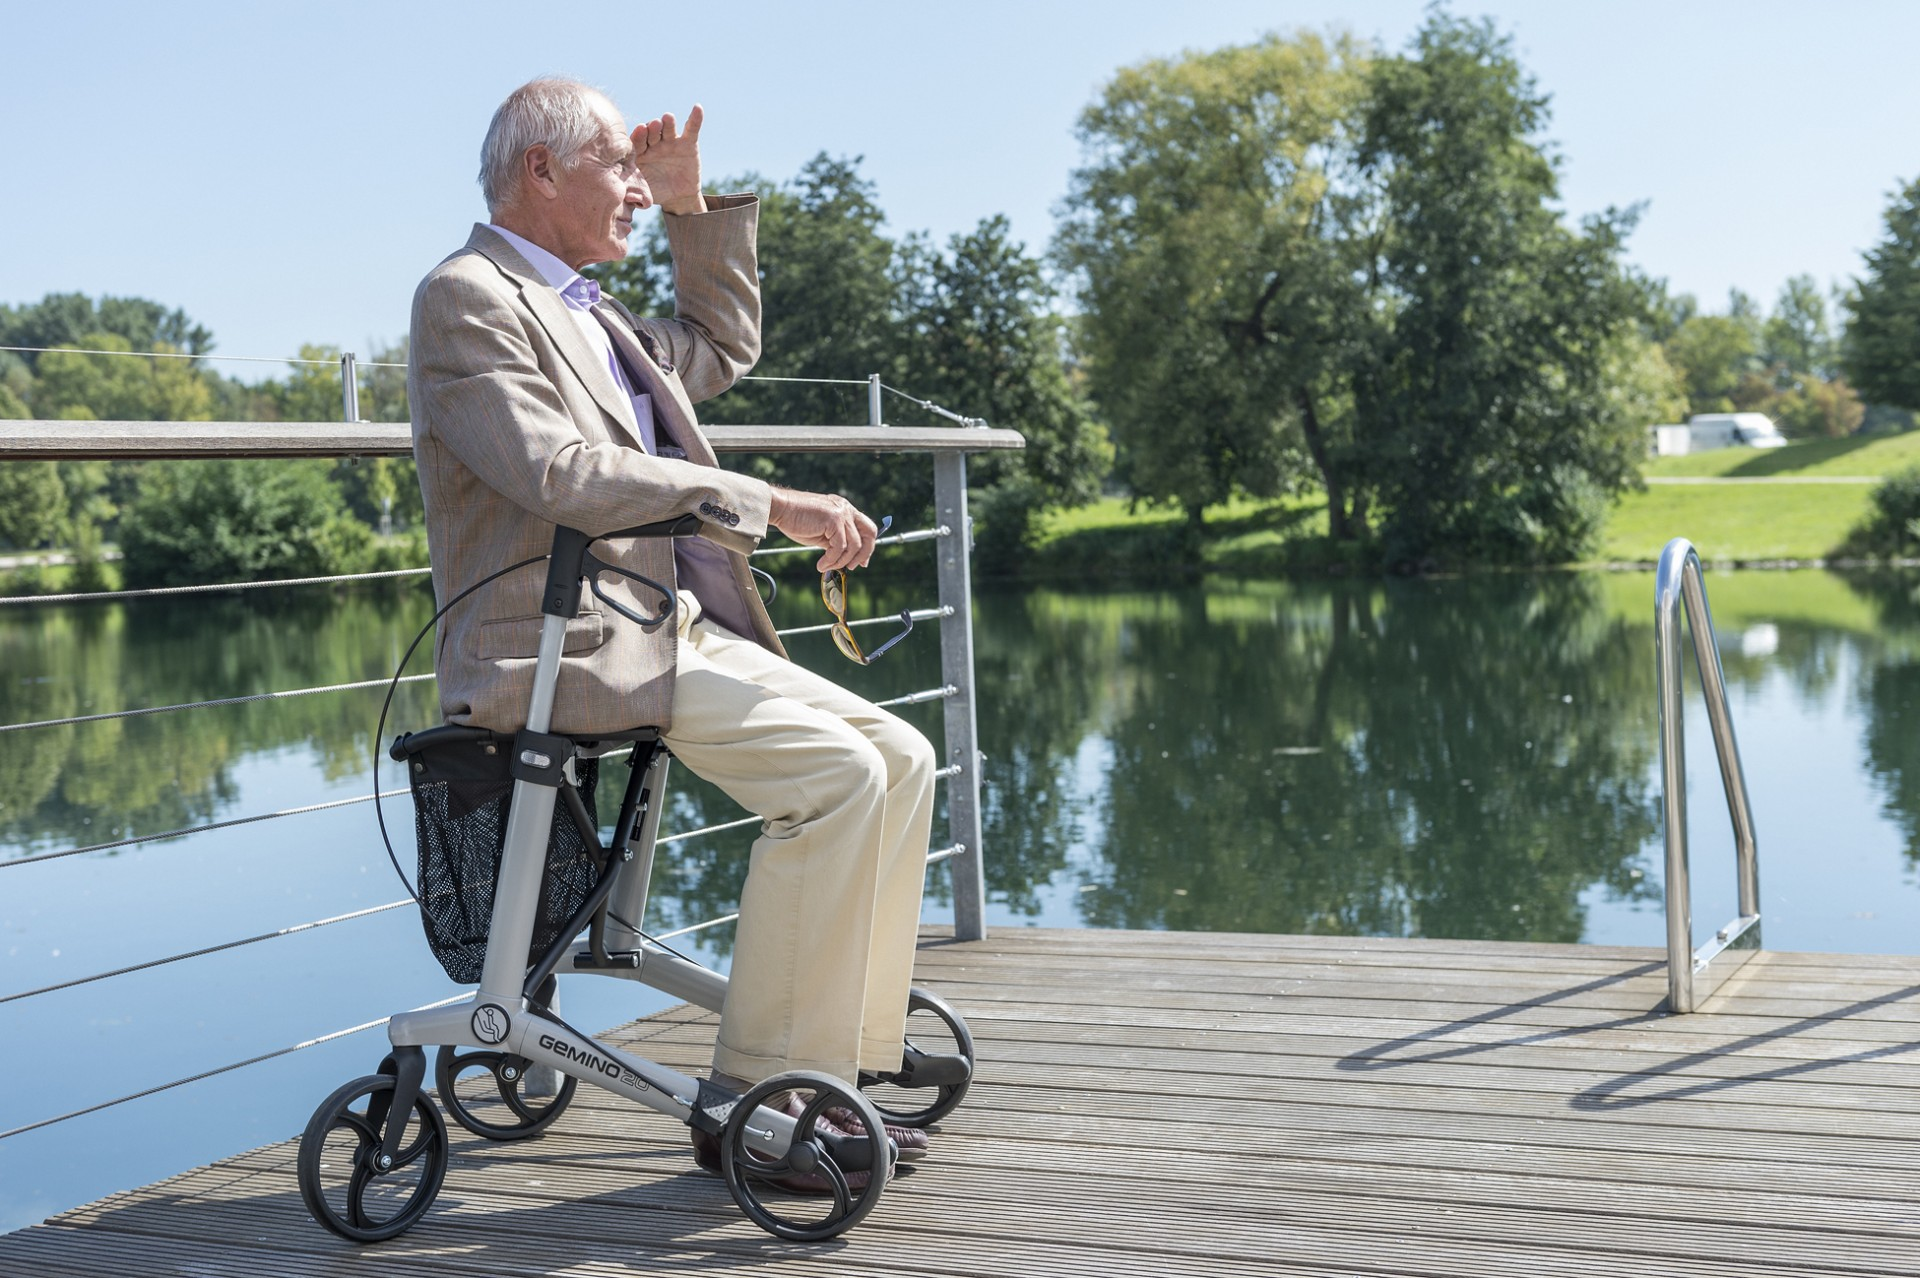 Gemino 30 rollator in zilver van Sunrise Medical buiten